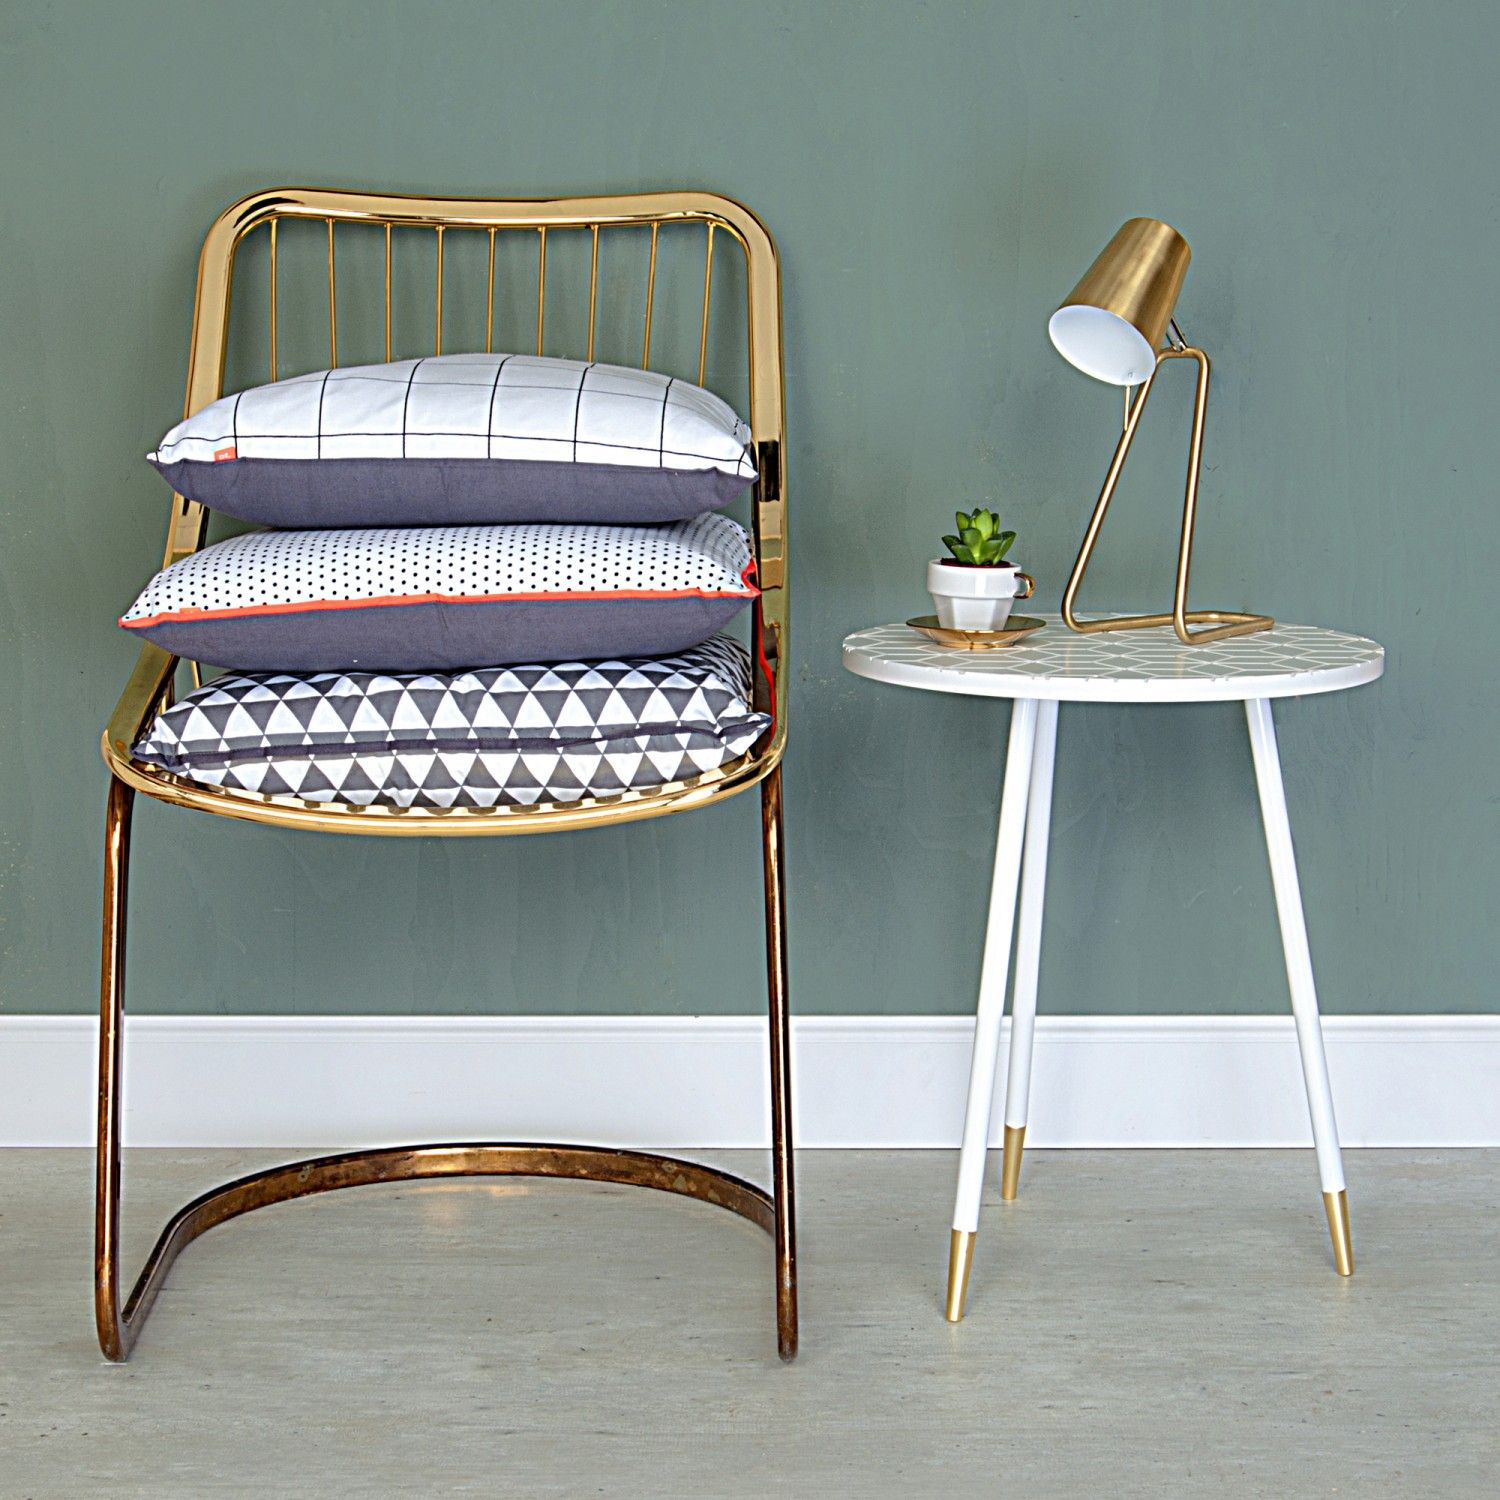 Table lamp z gold lamp gold table interior pinterest are you interested in our copper brass table lamp light with our z shaped desk office table lamp you need look no further geotapseo Choice Image